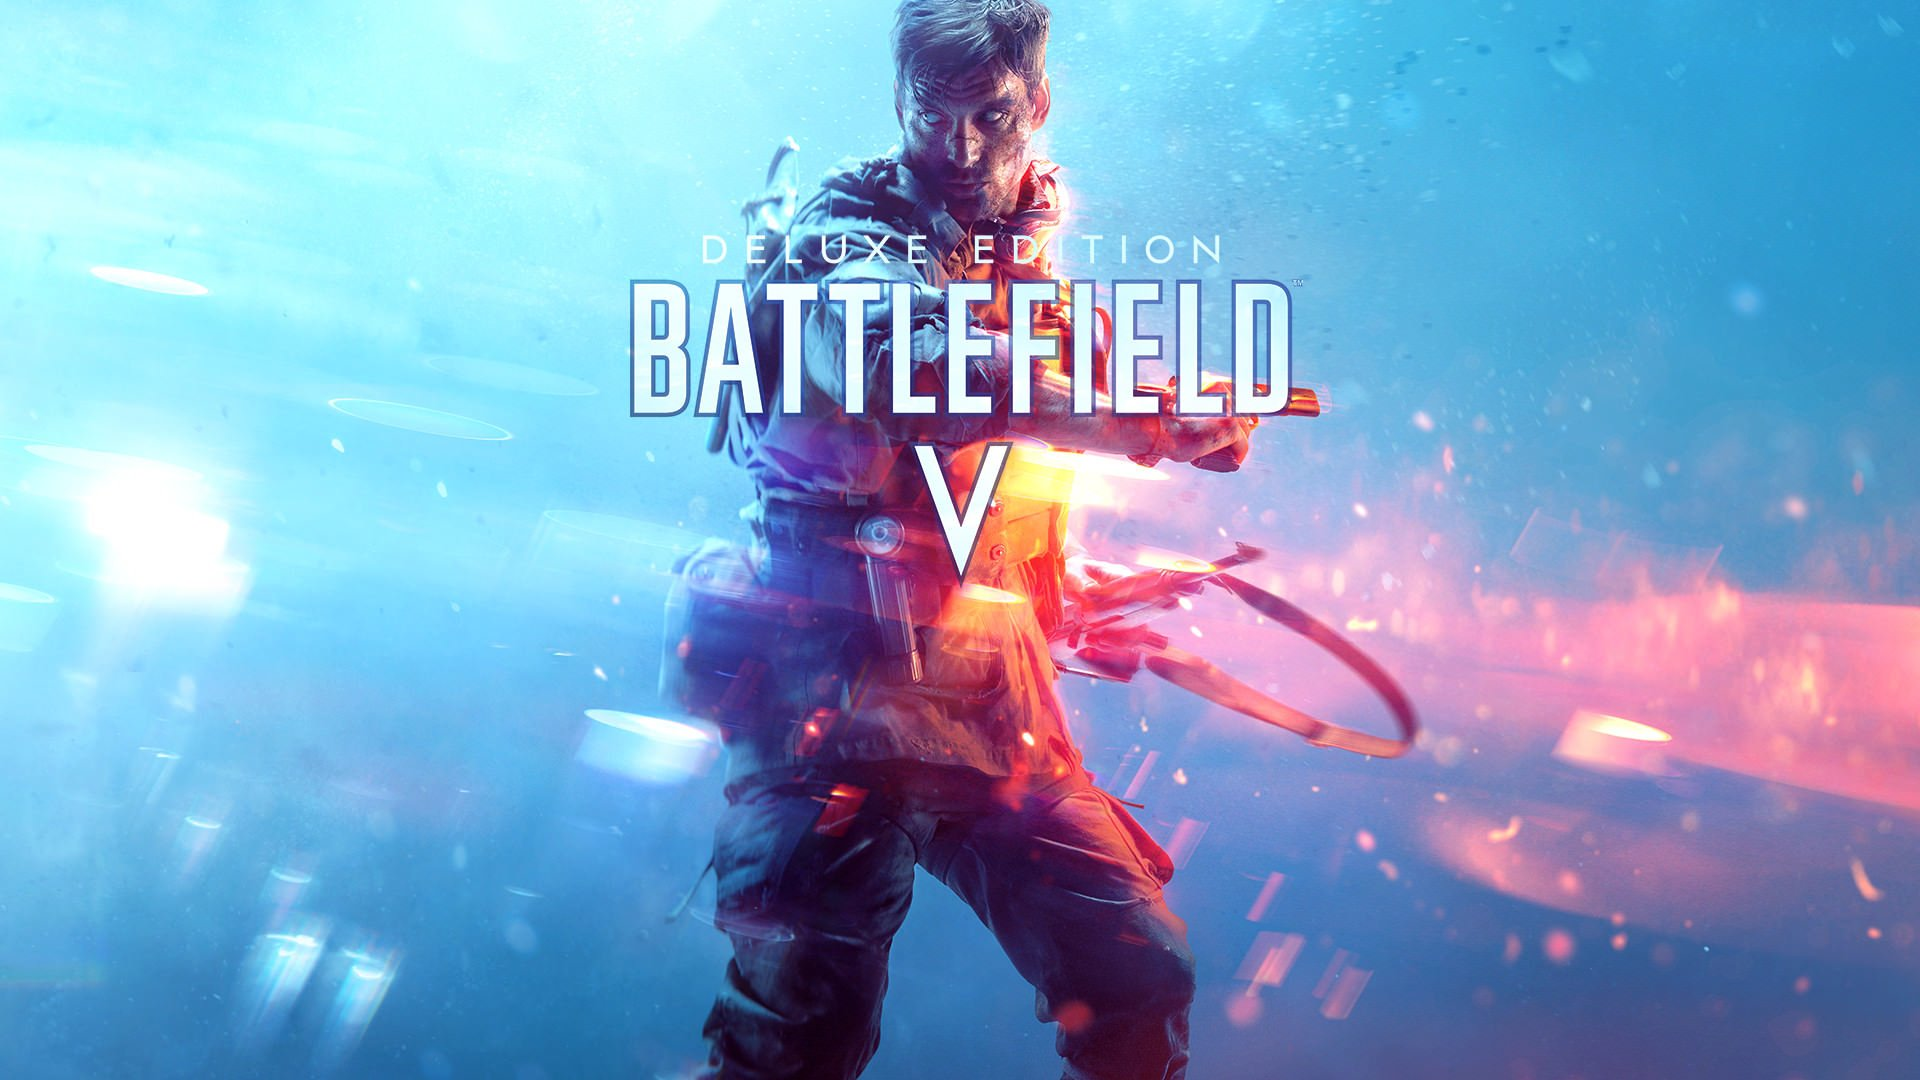 Download Wallpaper 1280x1280 Battlefield 4 Game Ea: Battlefield V HD Wallpaper